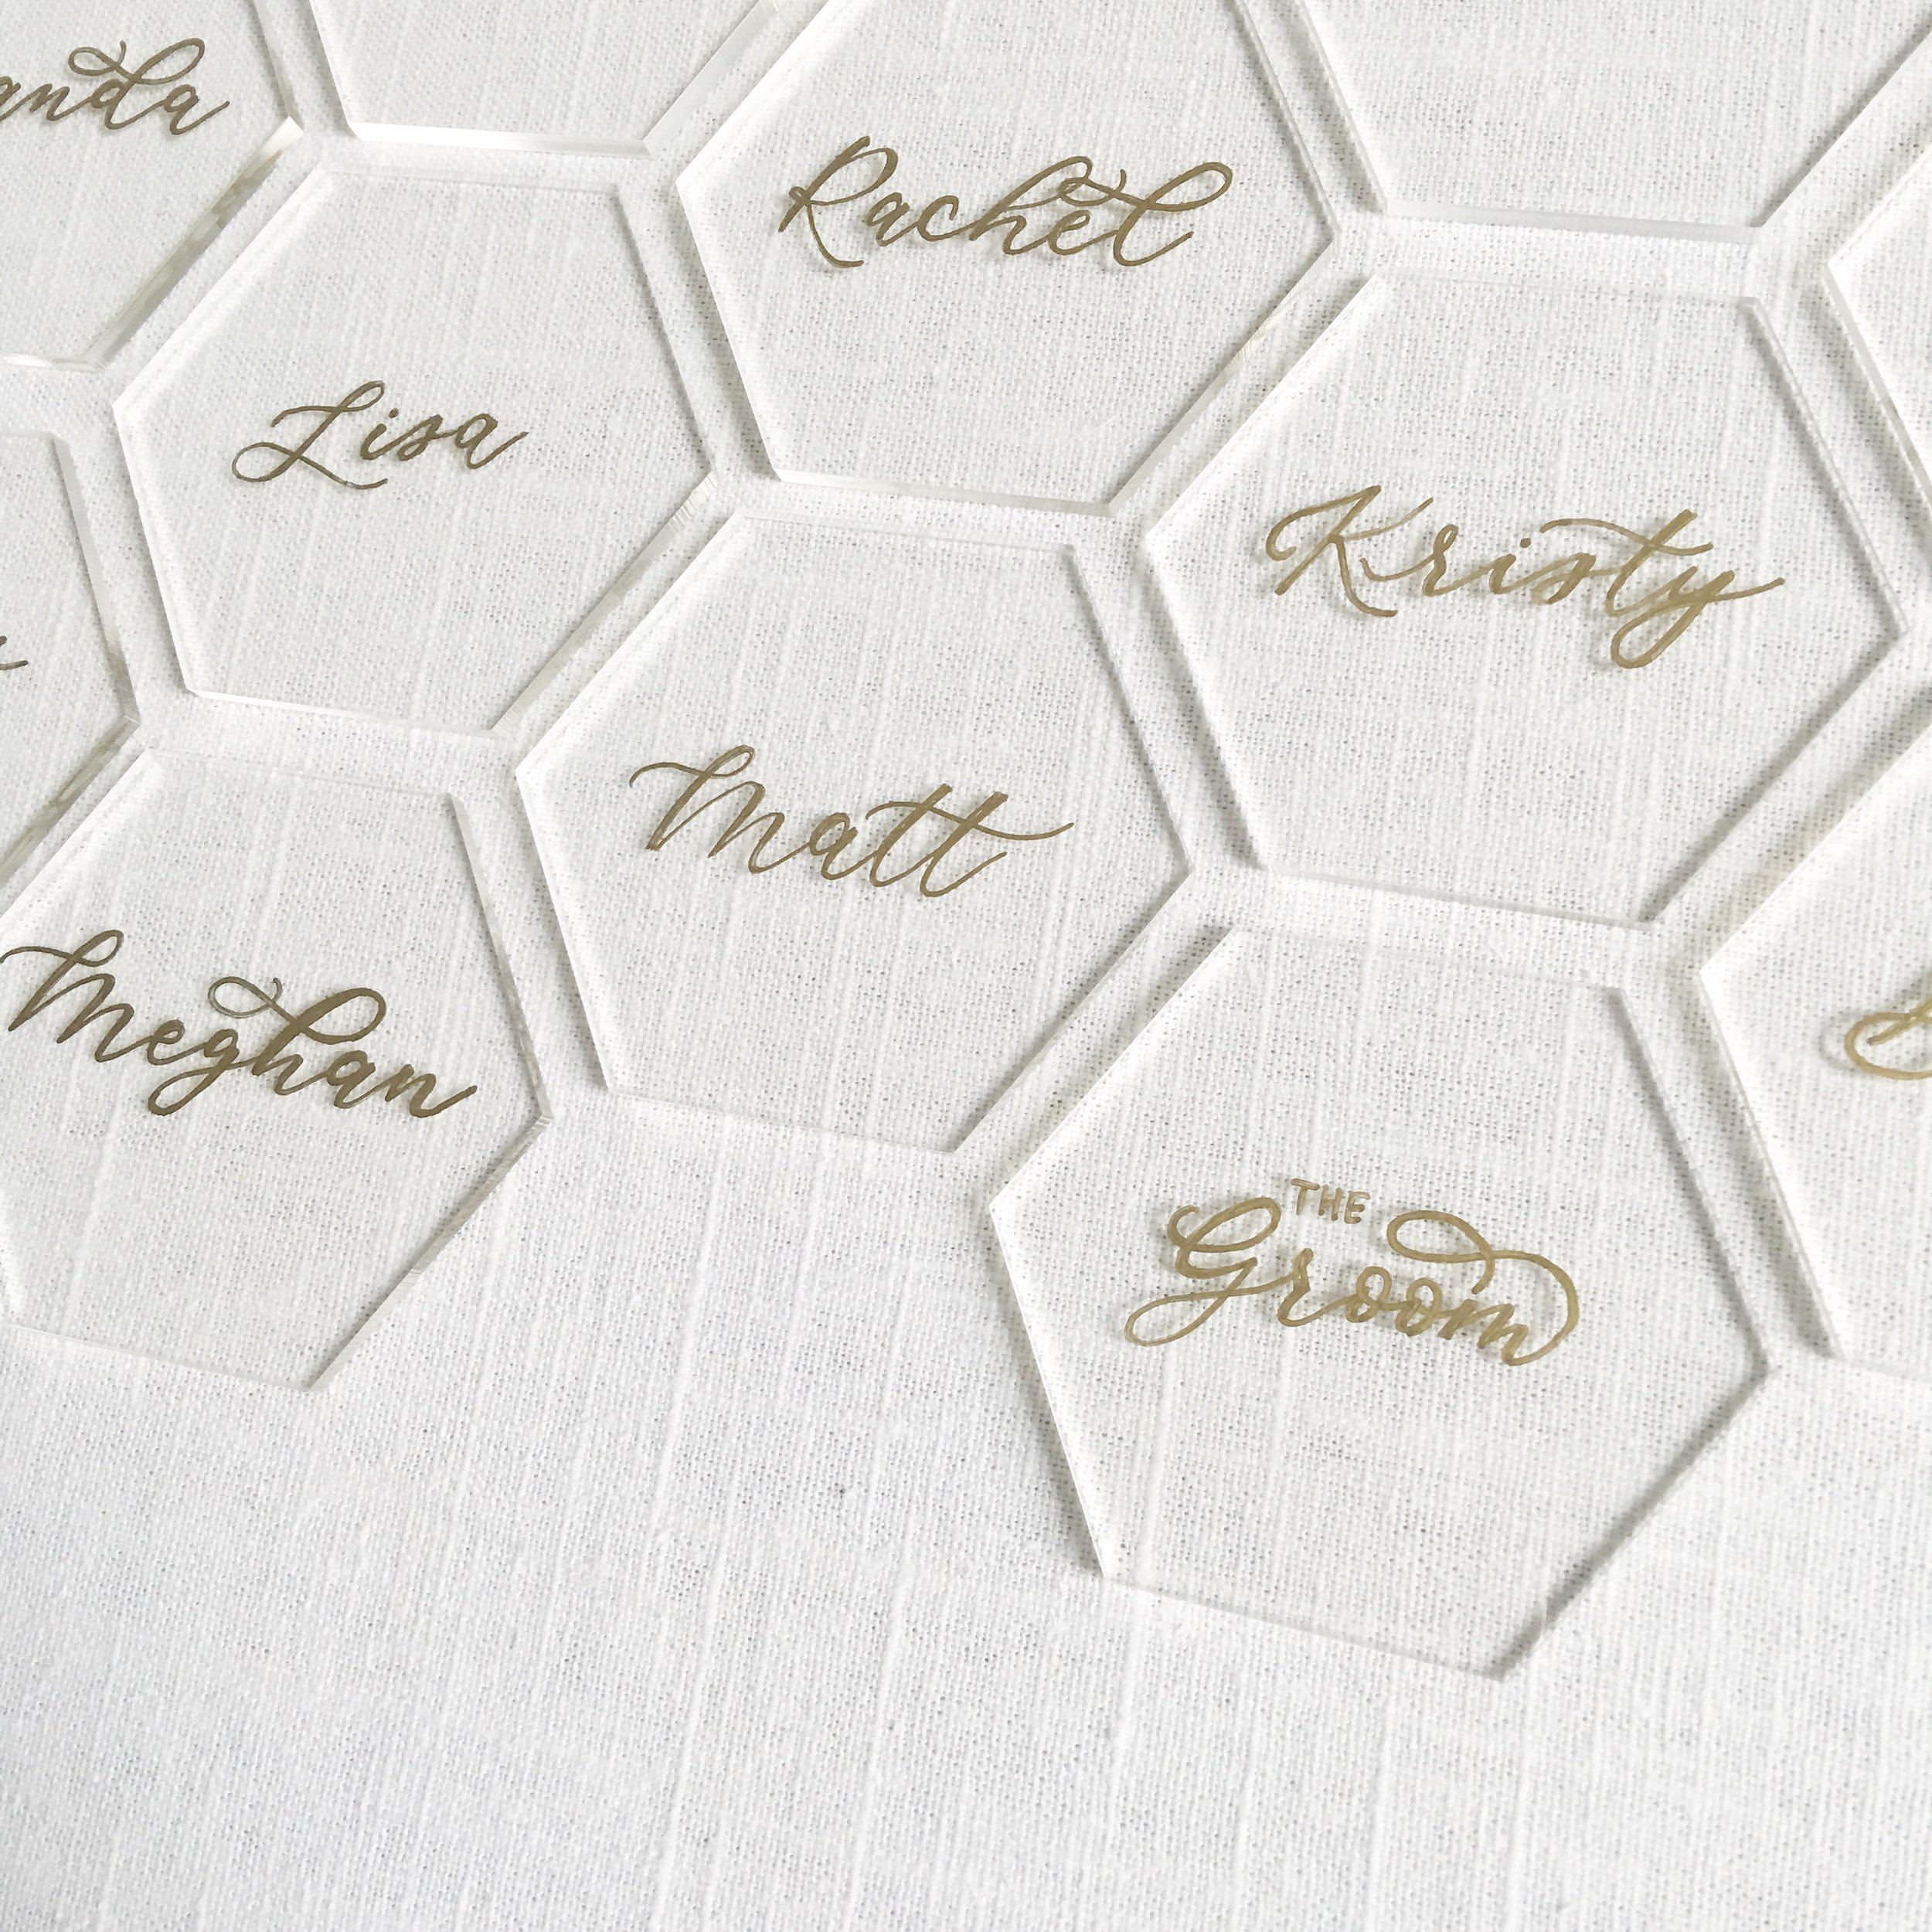 Acrylic Name Placecards